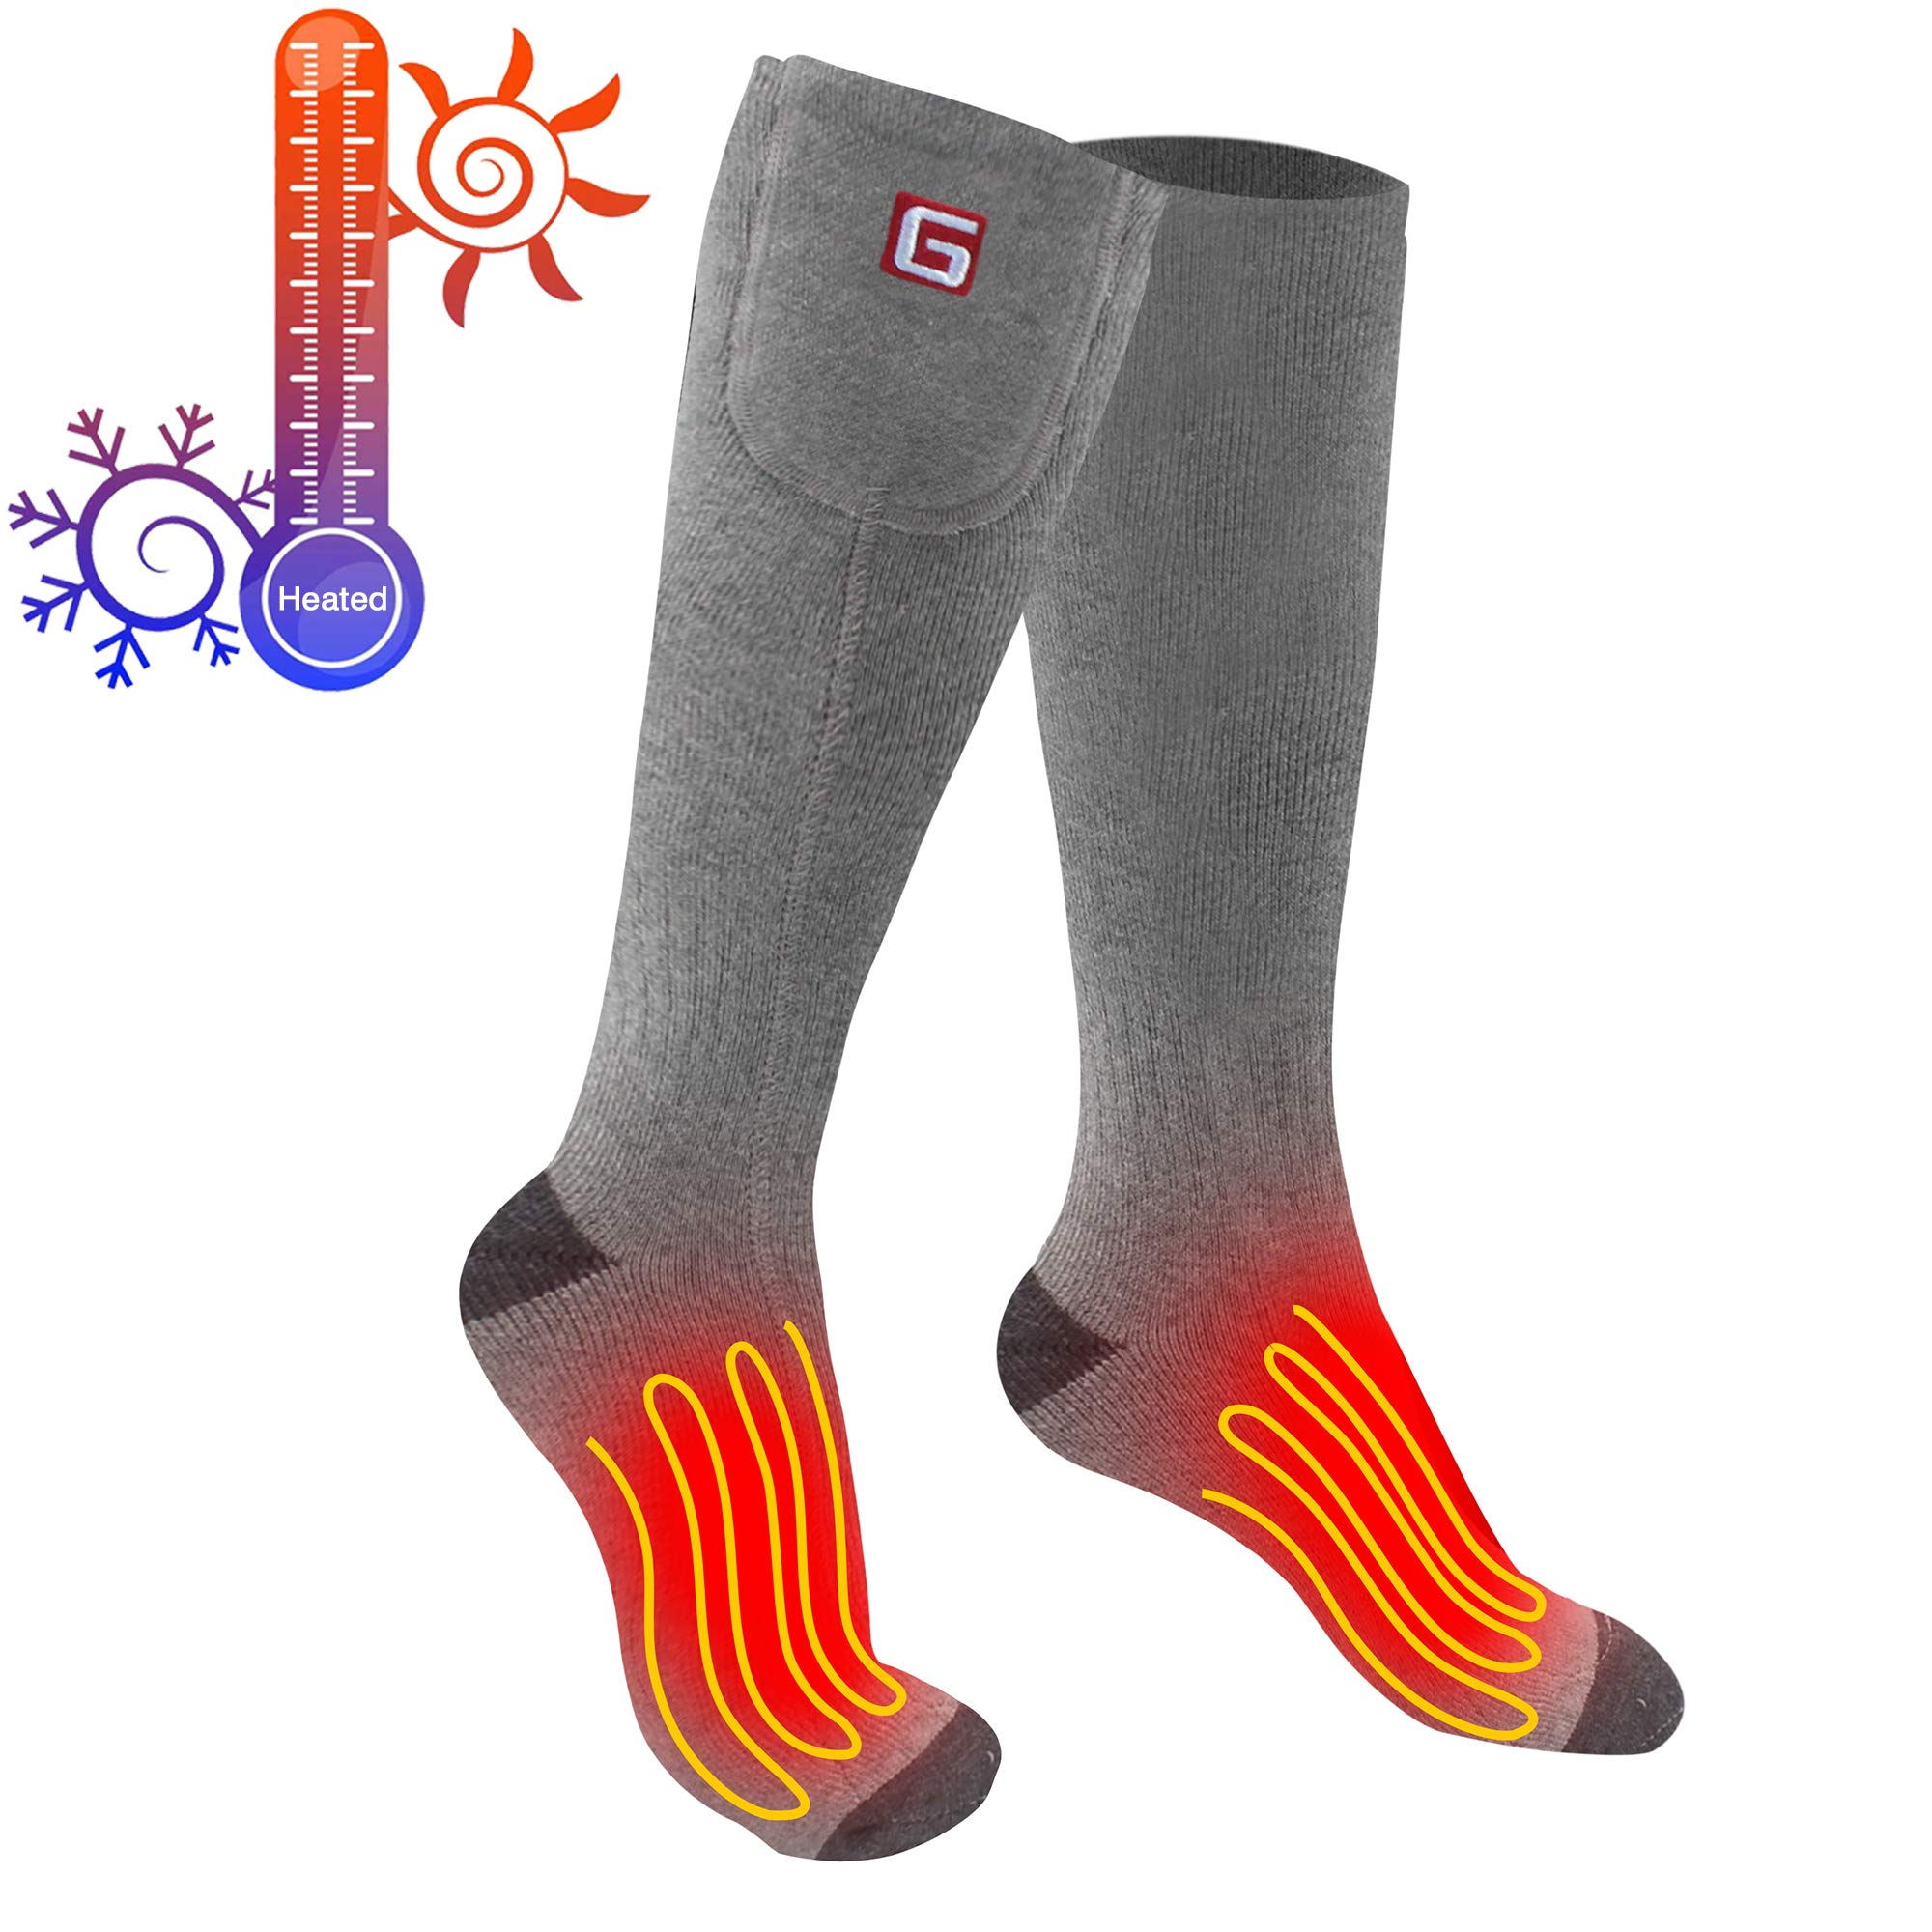 Greensha Electric Heated Socks With Rechargeable Battery 3 Levels Temperature Control Warming Feet Thermal Socks For Cold Weather,Indoor Or Outdoor Activity by Greensha